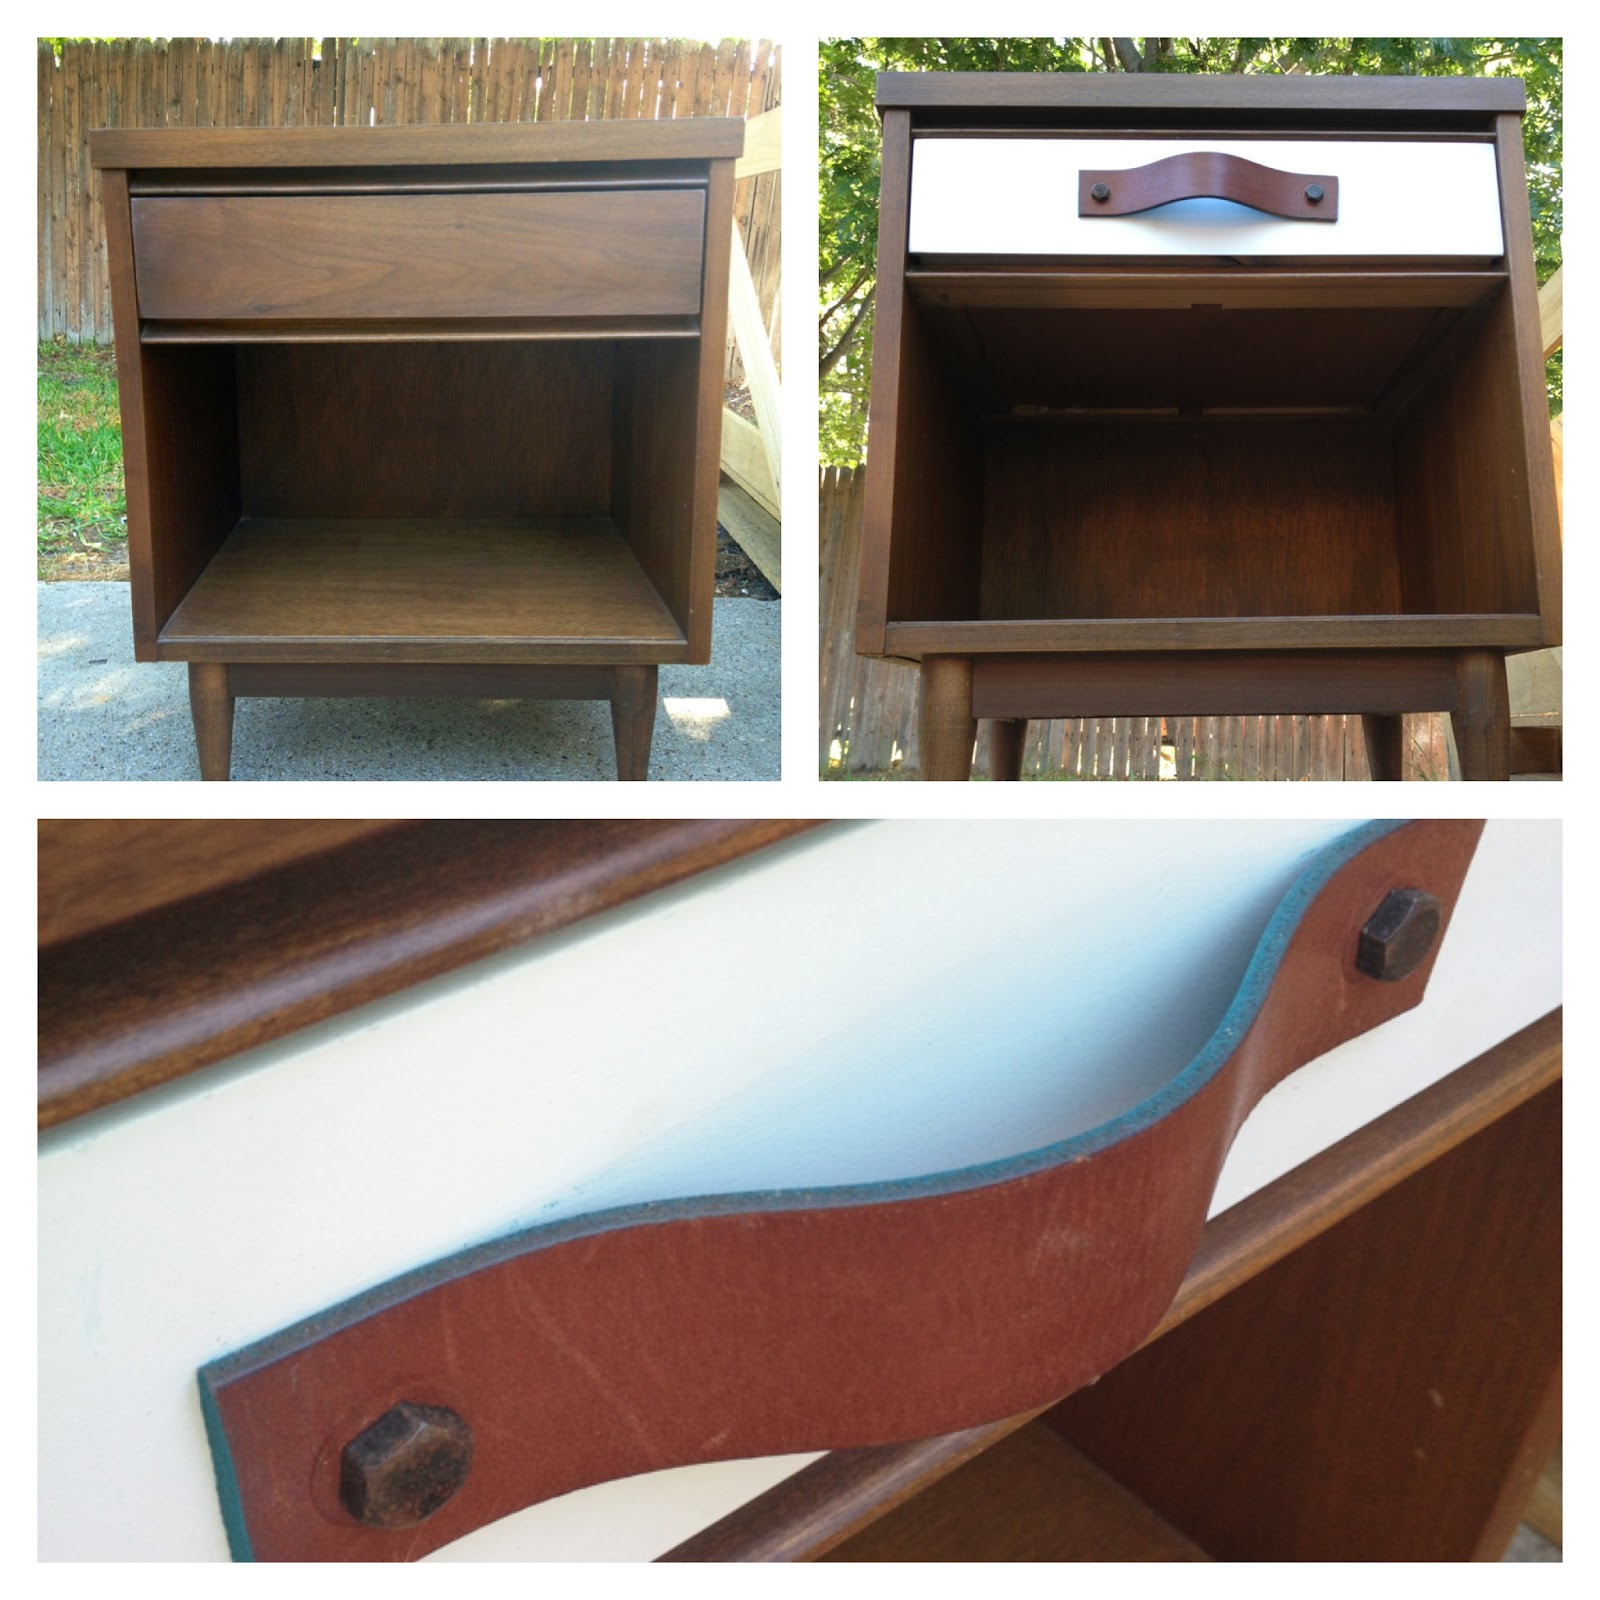 The Happy Homebo s DIY Nightstand Facelift